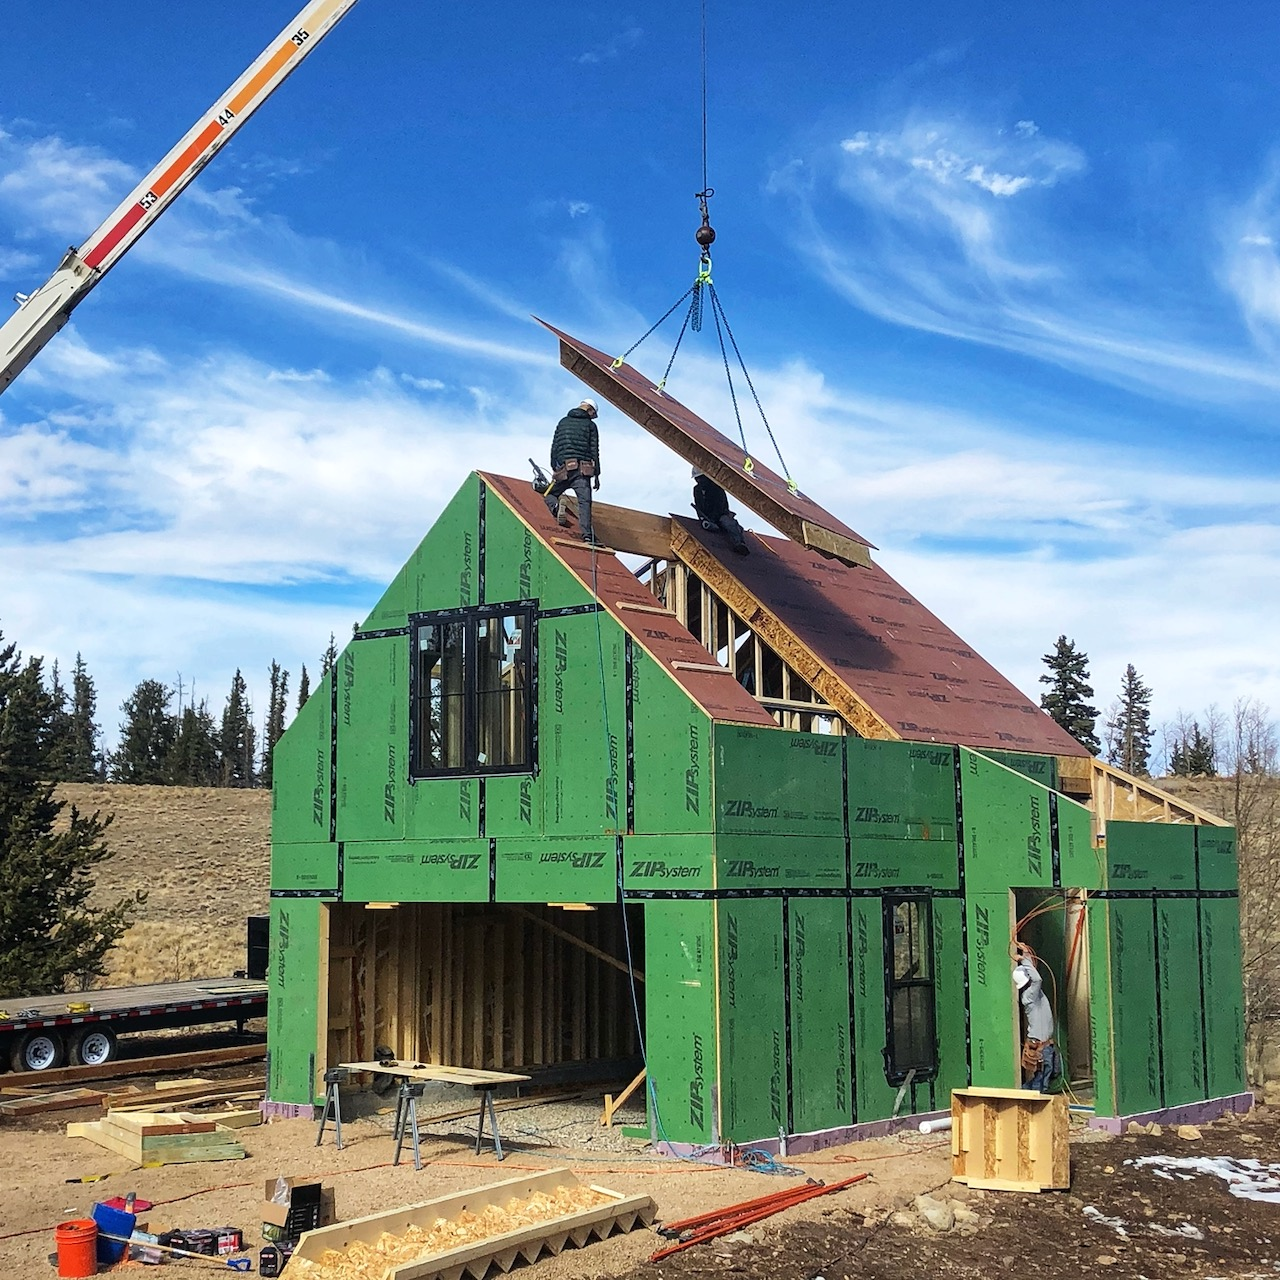 Panelized prefab accessory dwelling unit under construction in Colorado